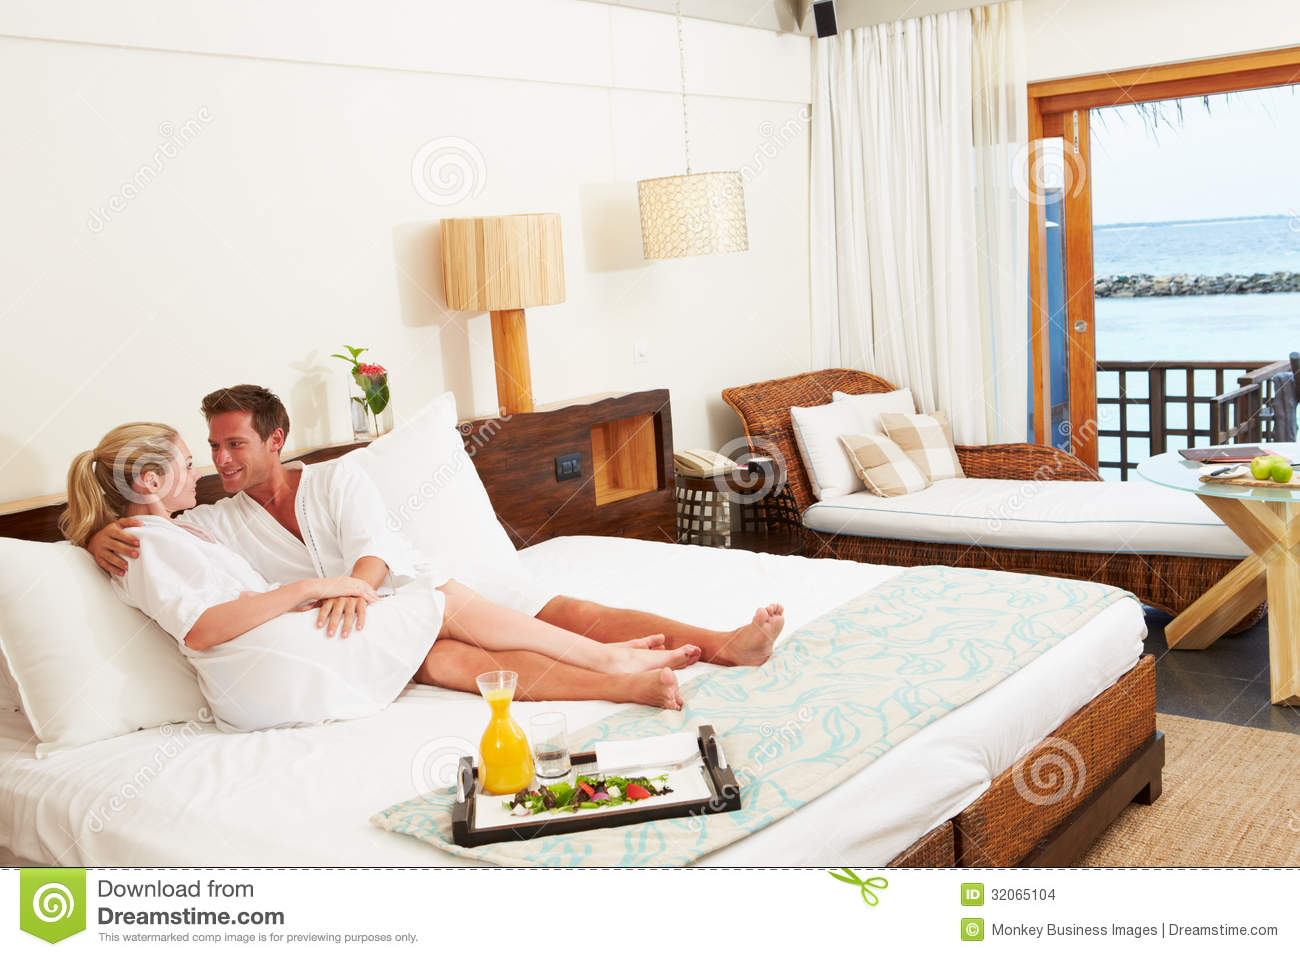 Couple Relaxing In Hotel Room Wearing Robes Stock Images